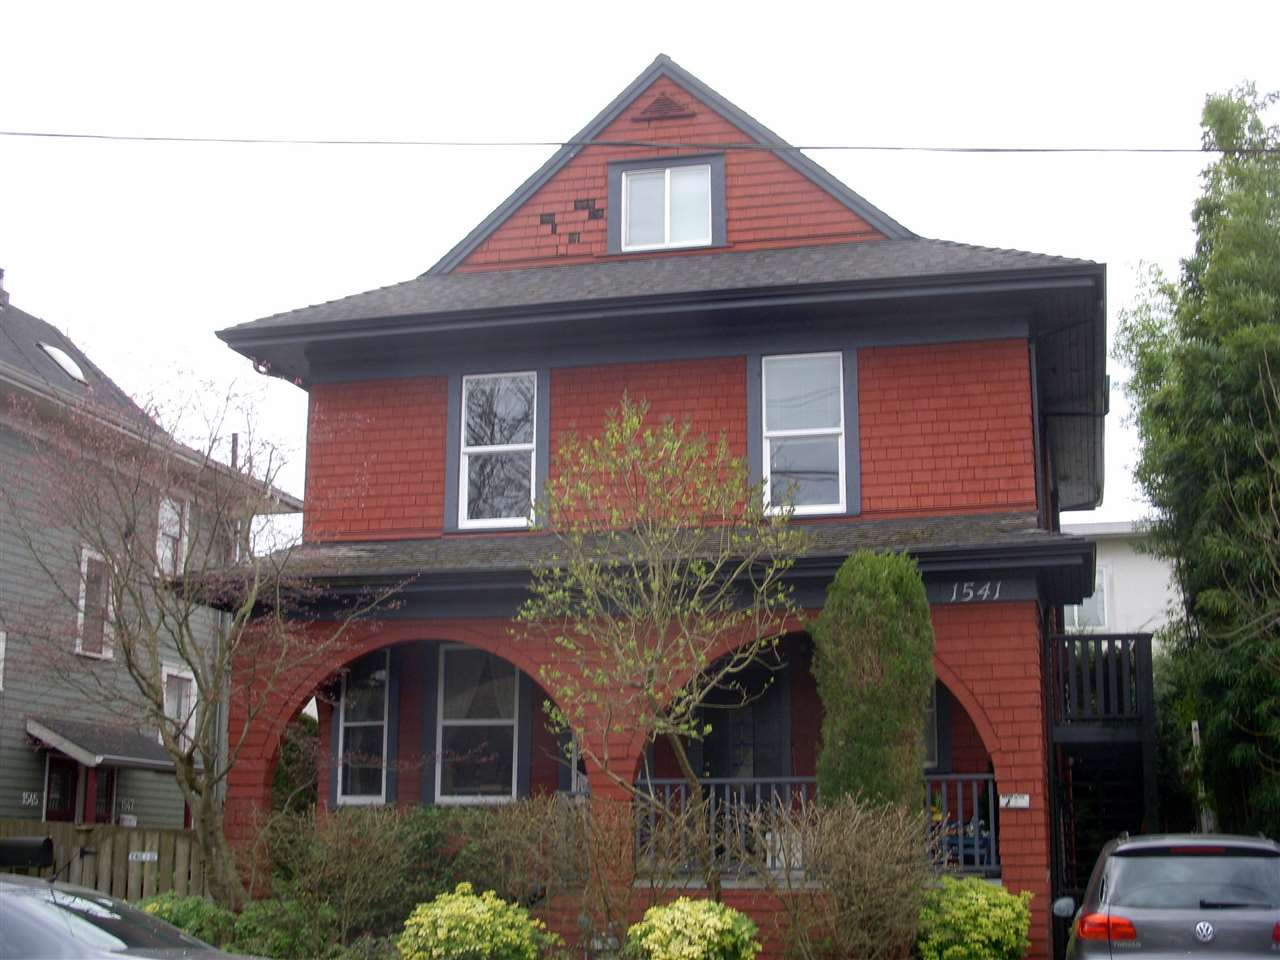 Main Photo: 1541 MAPLE Street in Vancouver: Kitsilano House for sale (Vancouver West)  : MLS® # R2052073